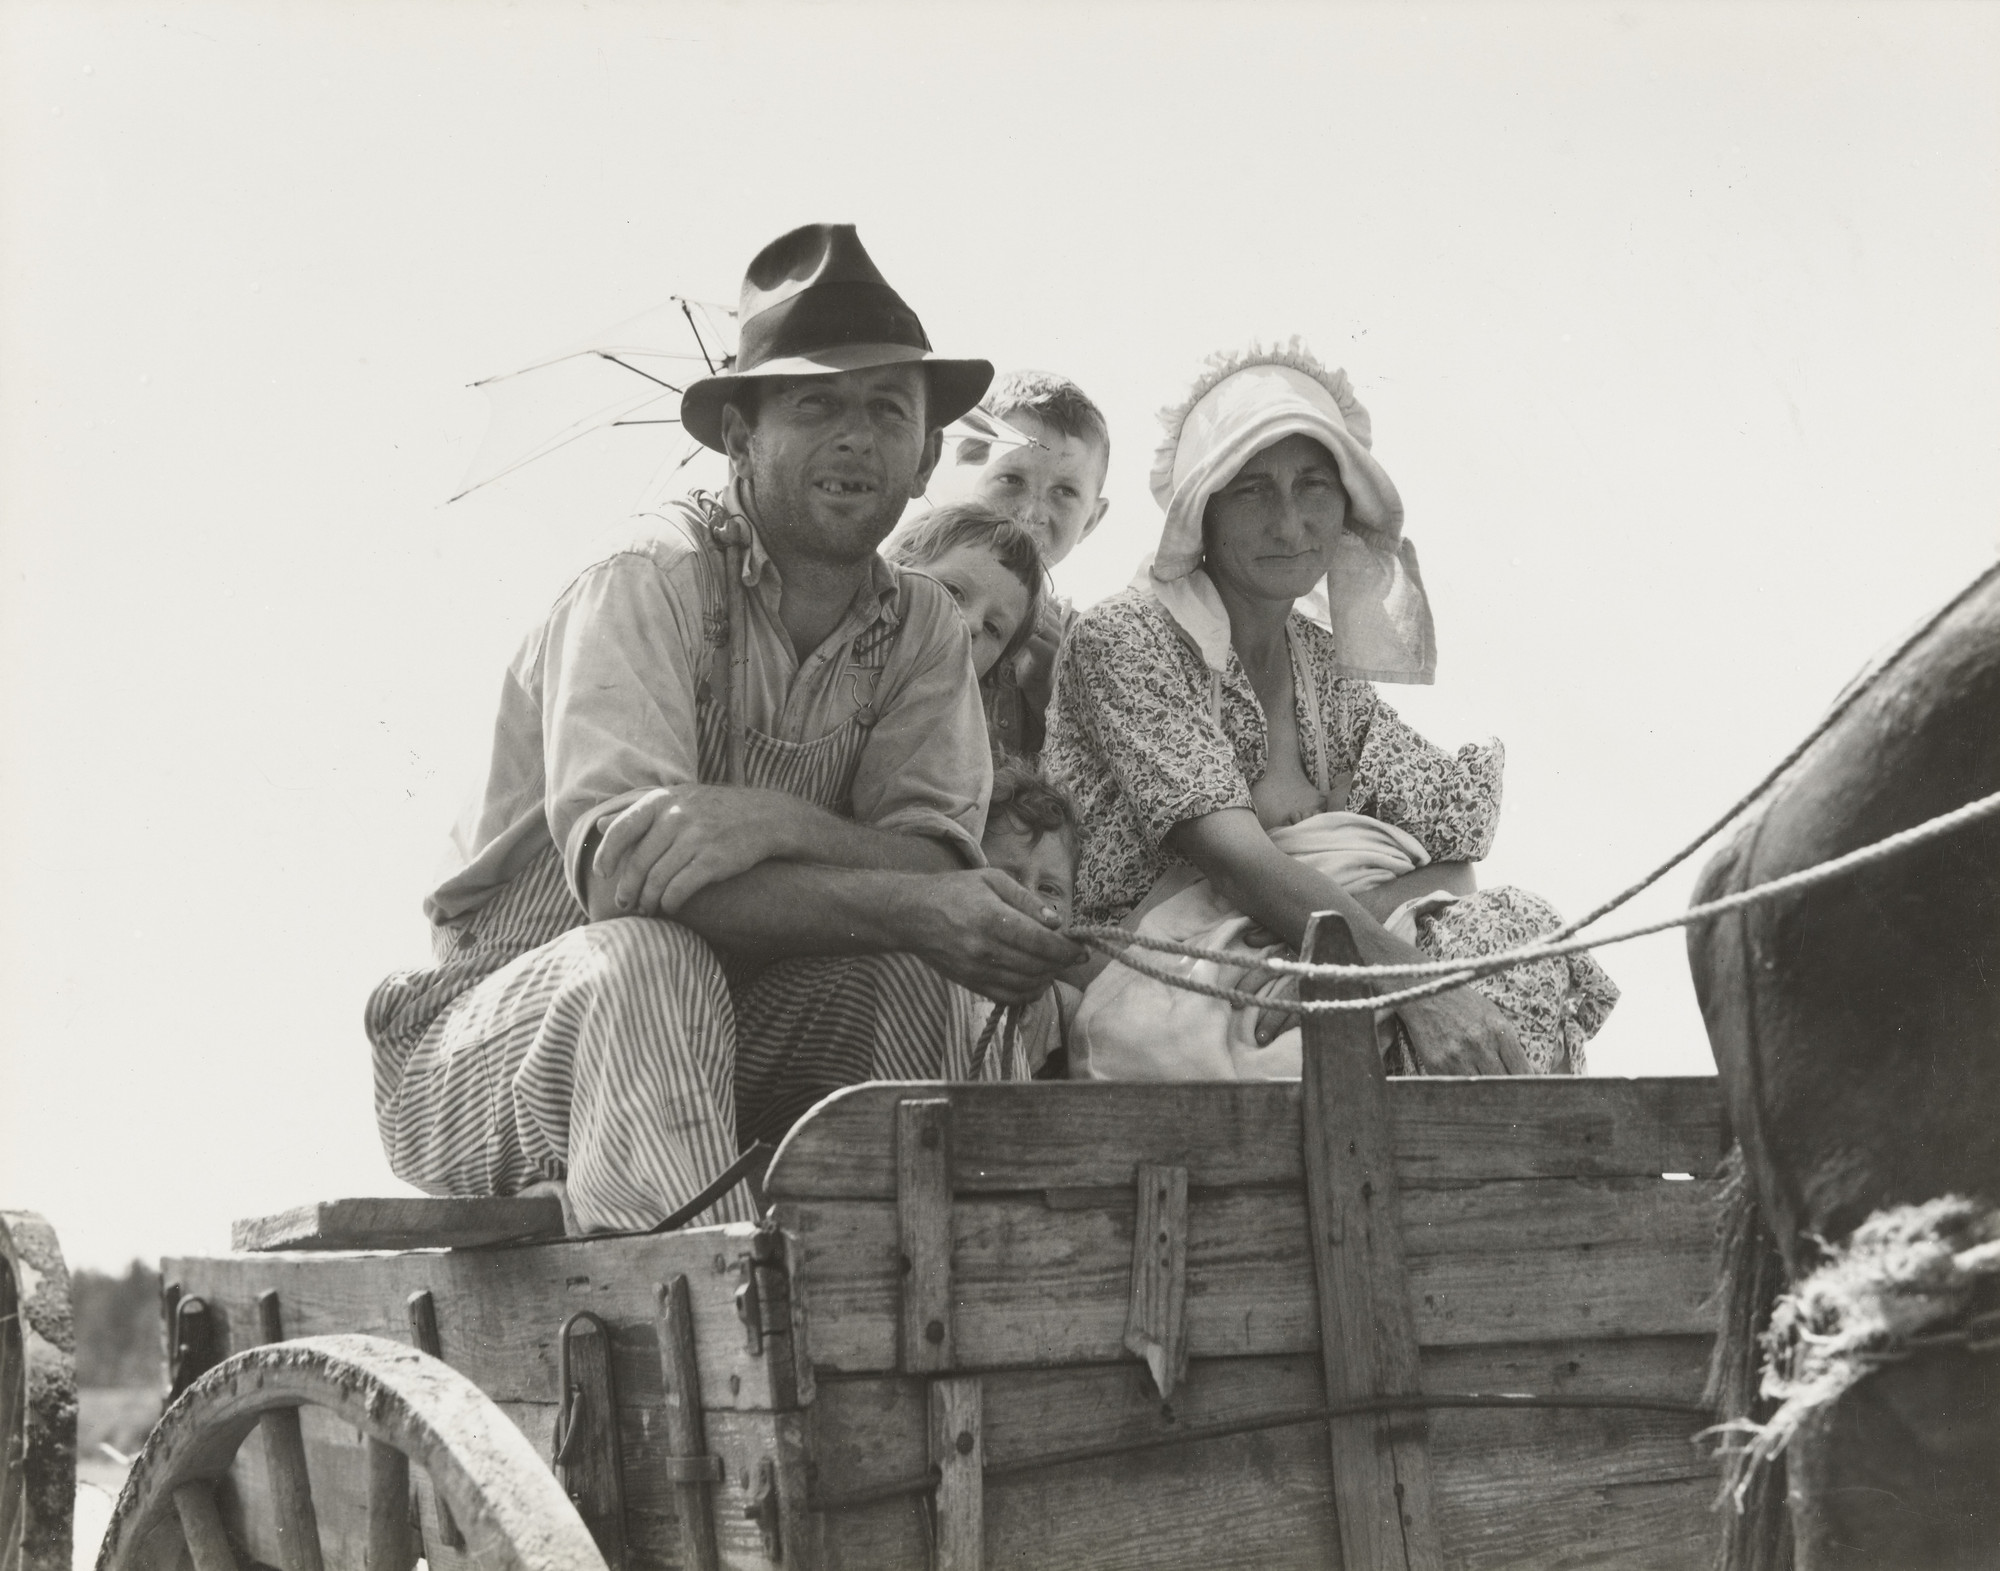 Dorothea Lange. Sharecropper's Family, Georgia. July 1937